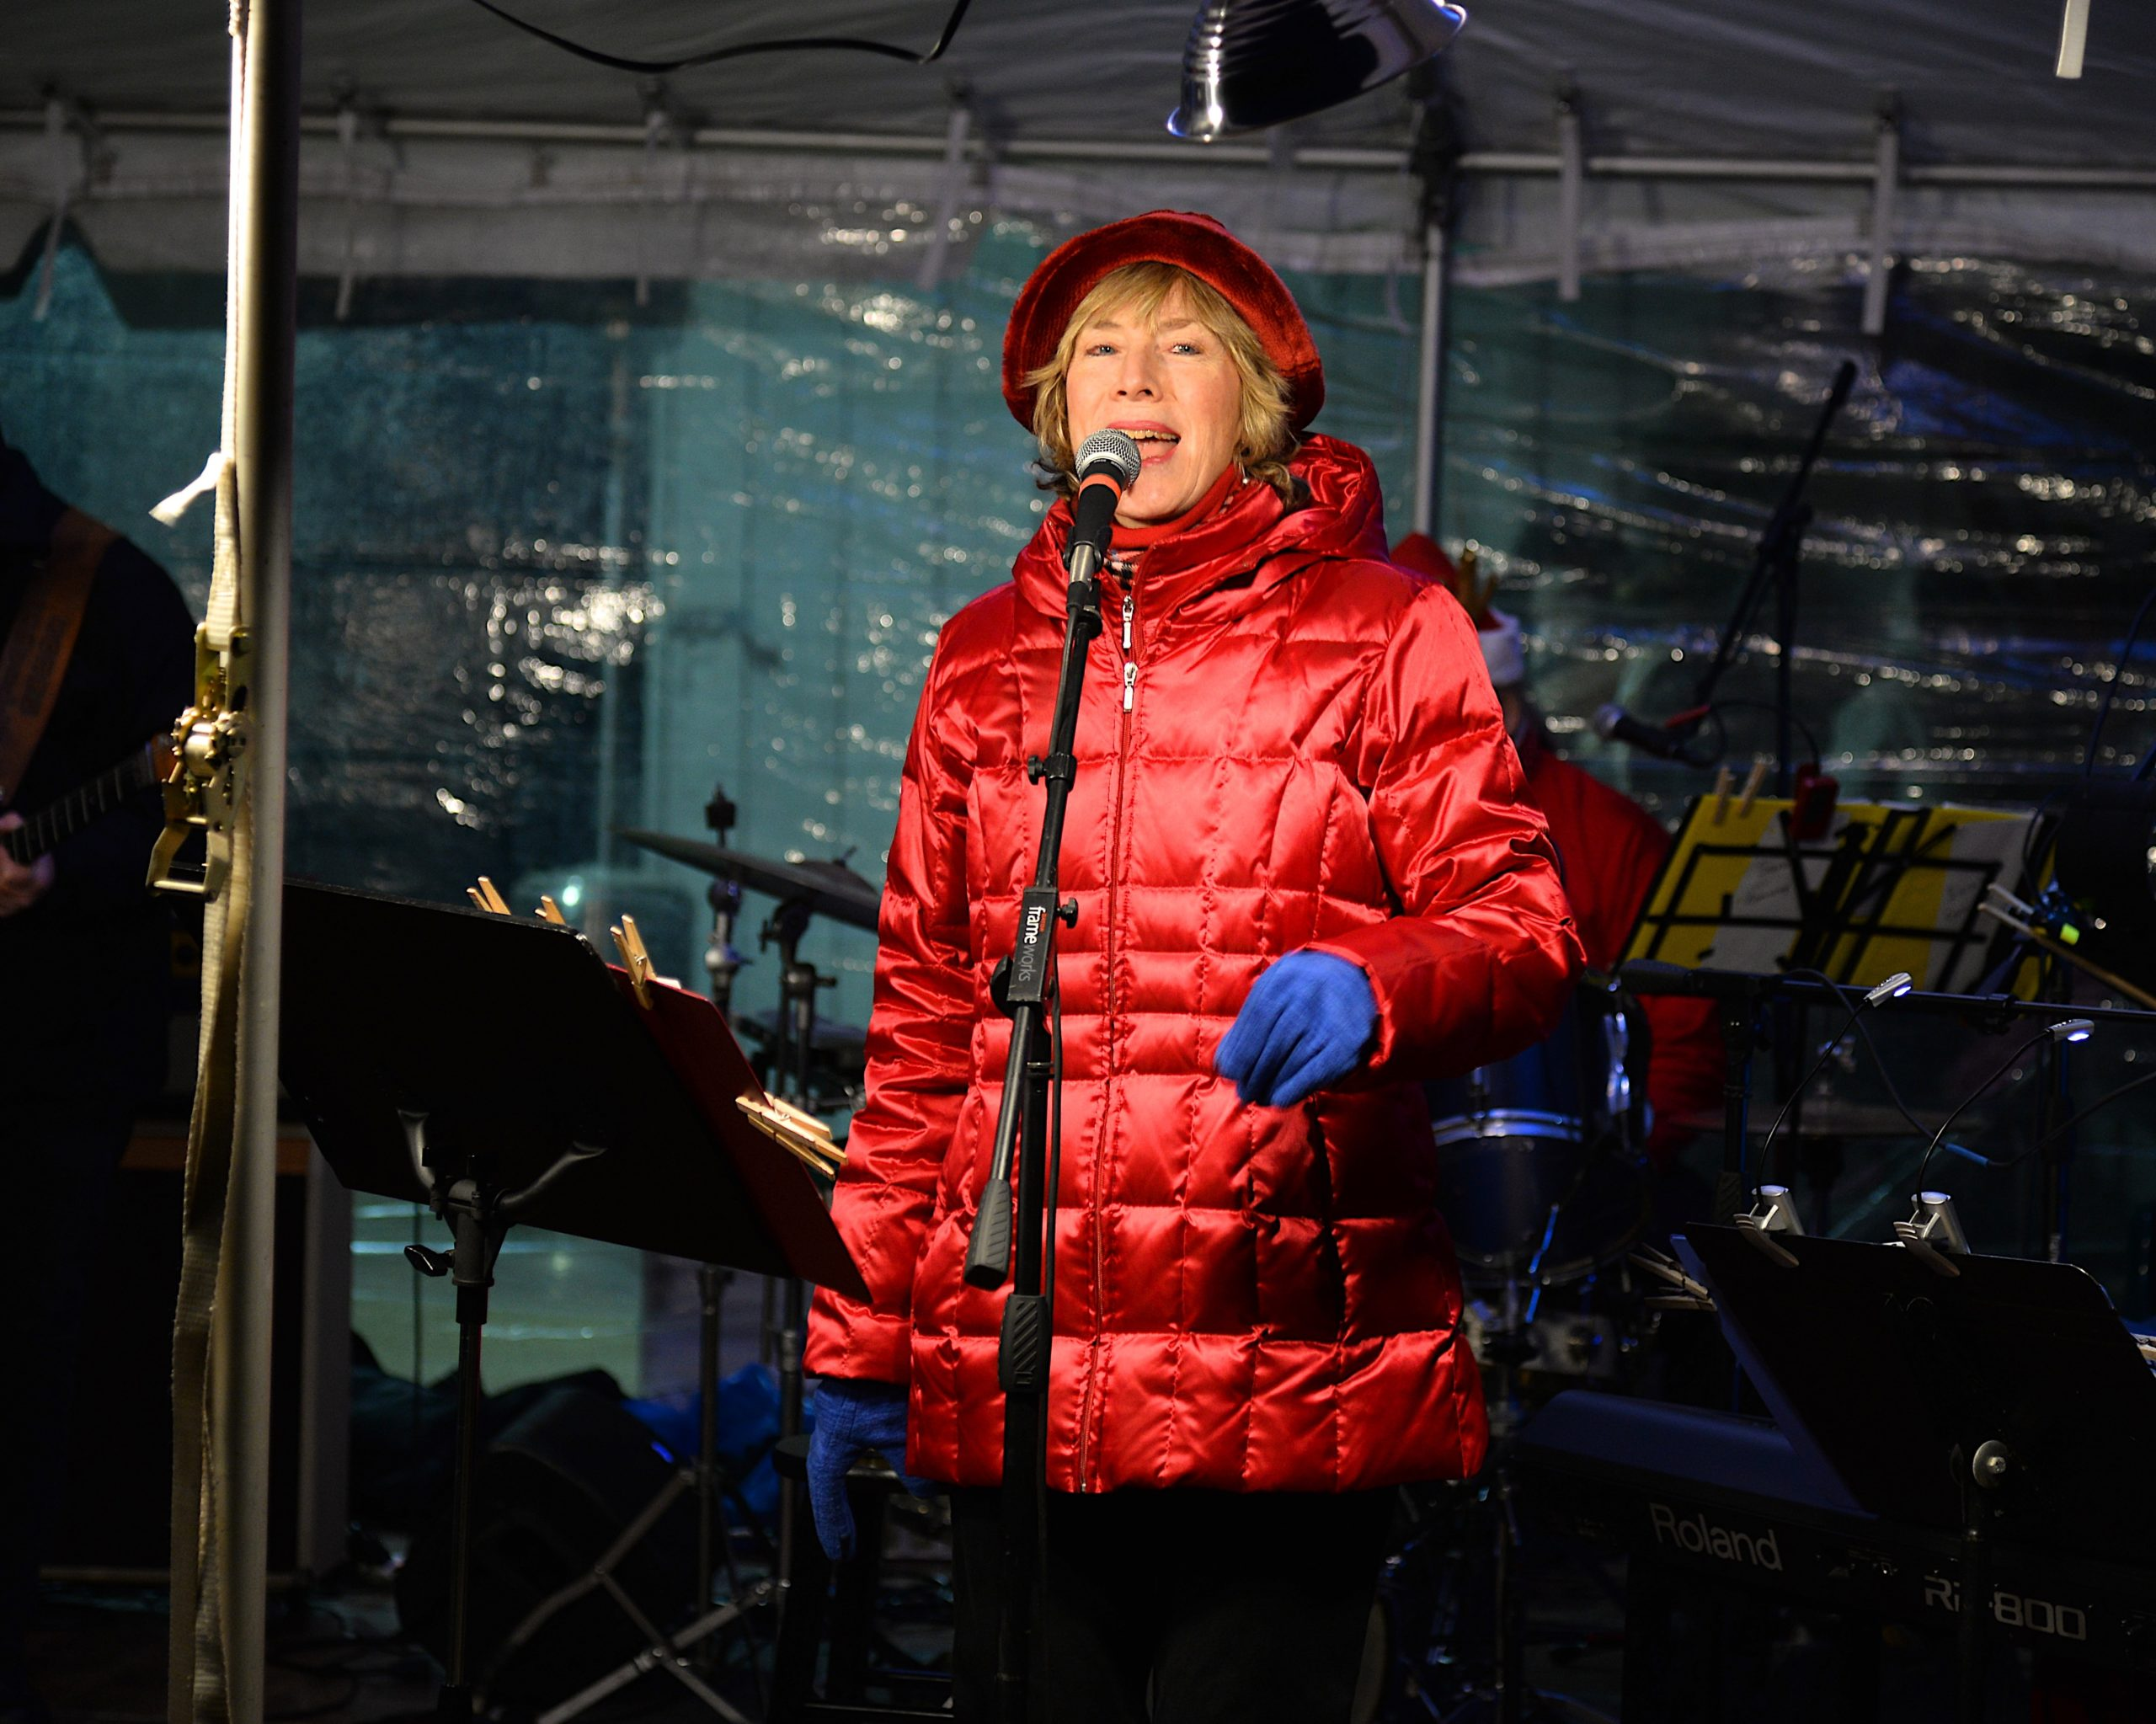 The Montauk Lighthouse was lit for the season on Saturday. Sara Conway and the Playful Souls warmed the crowd with Christmas carols. KYRIL BROMLEY